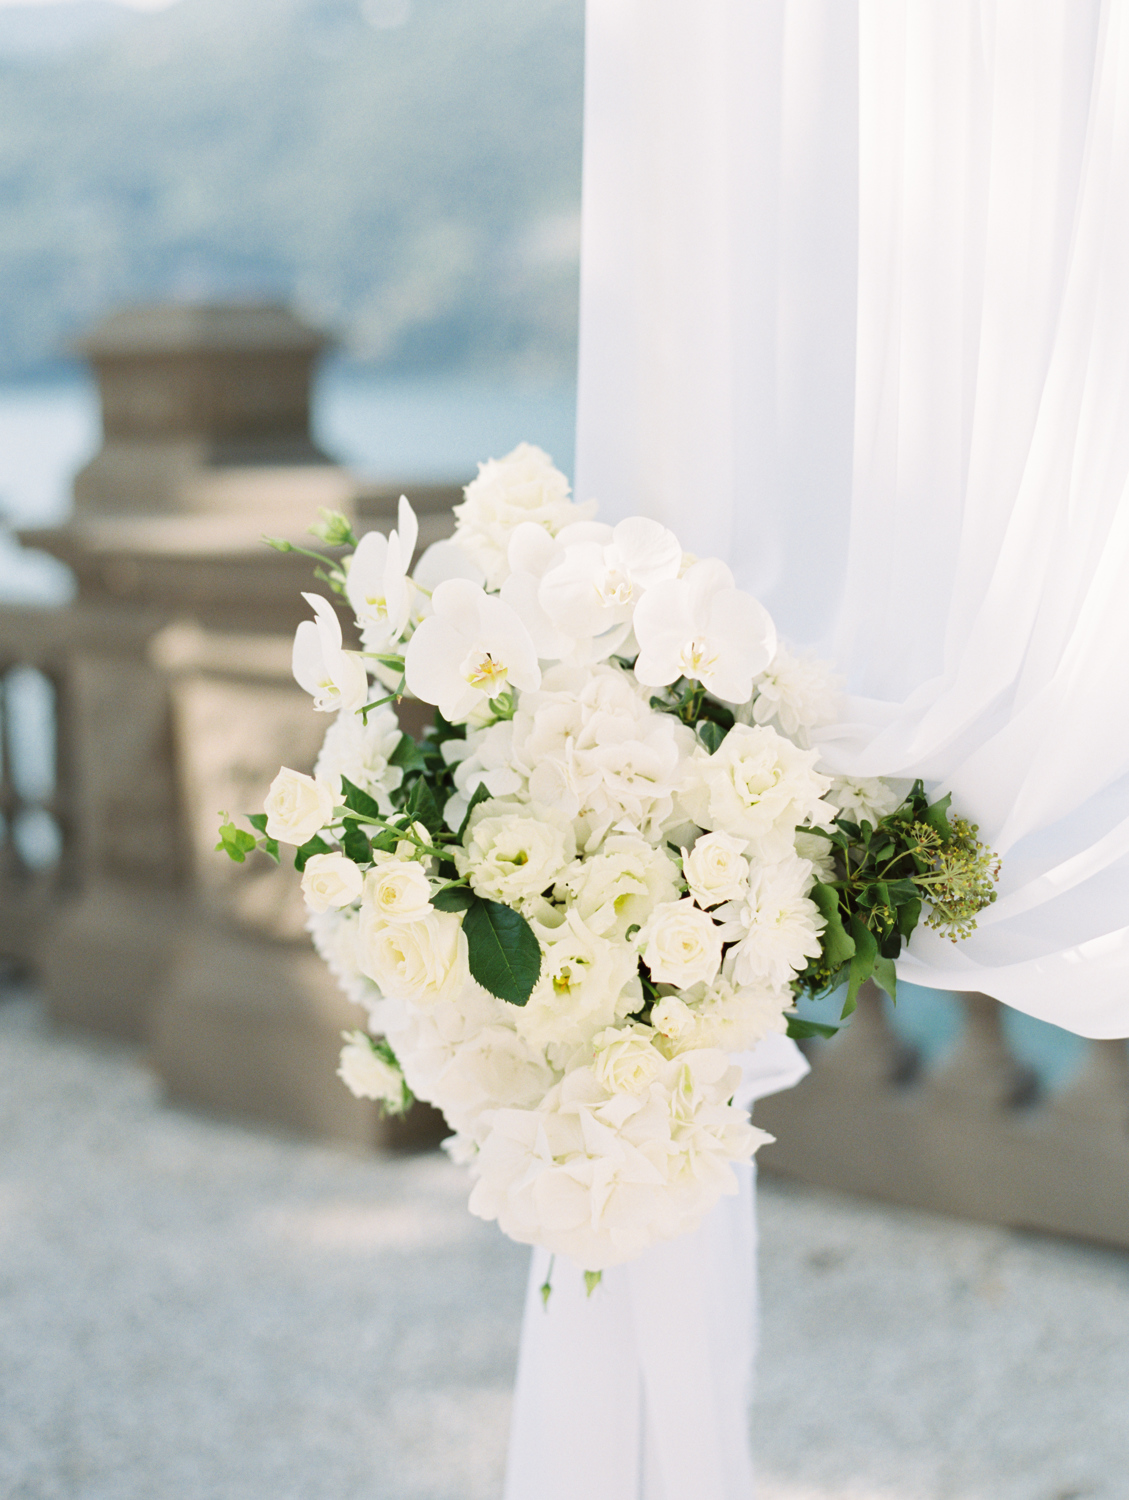 white flower decoration wedding ceremony castadiva resort